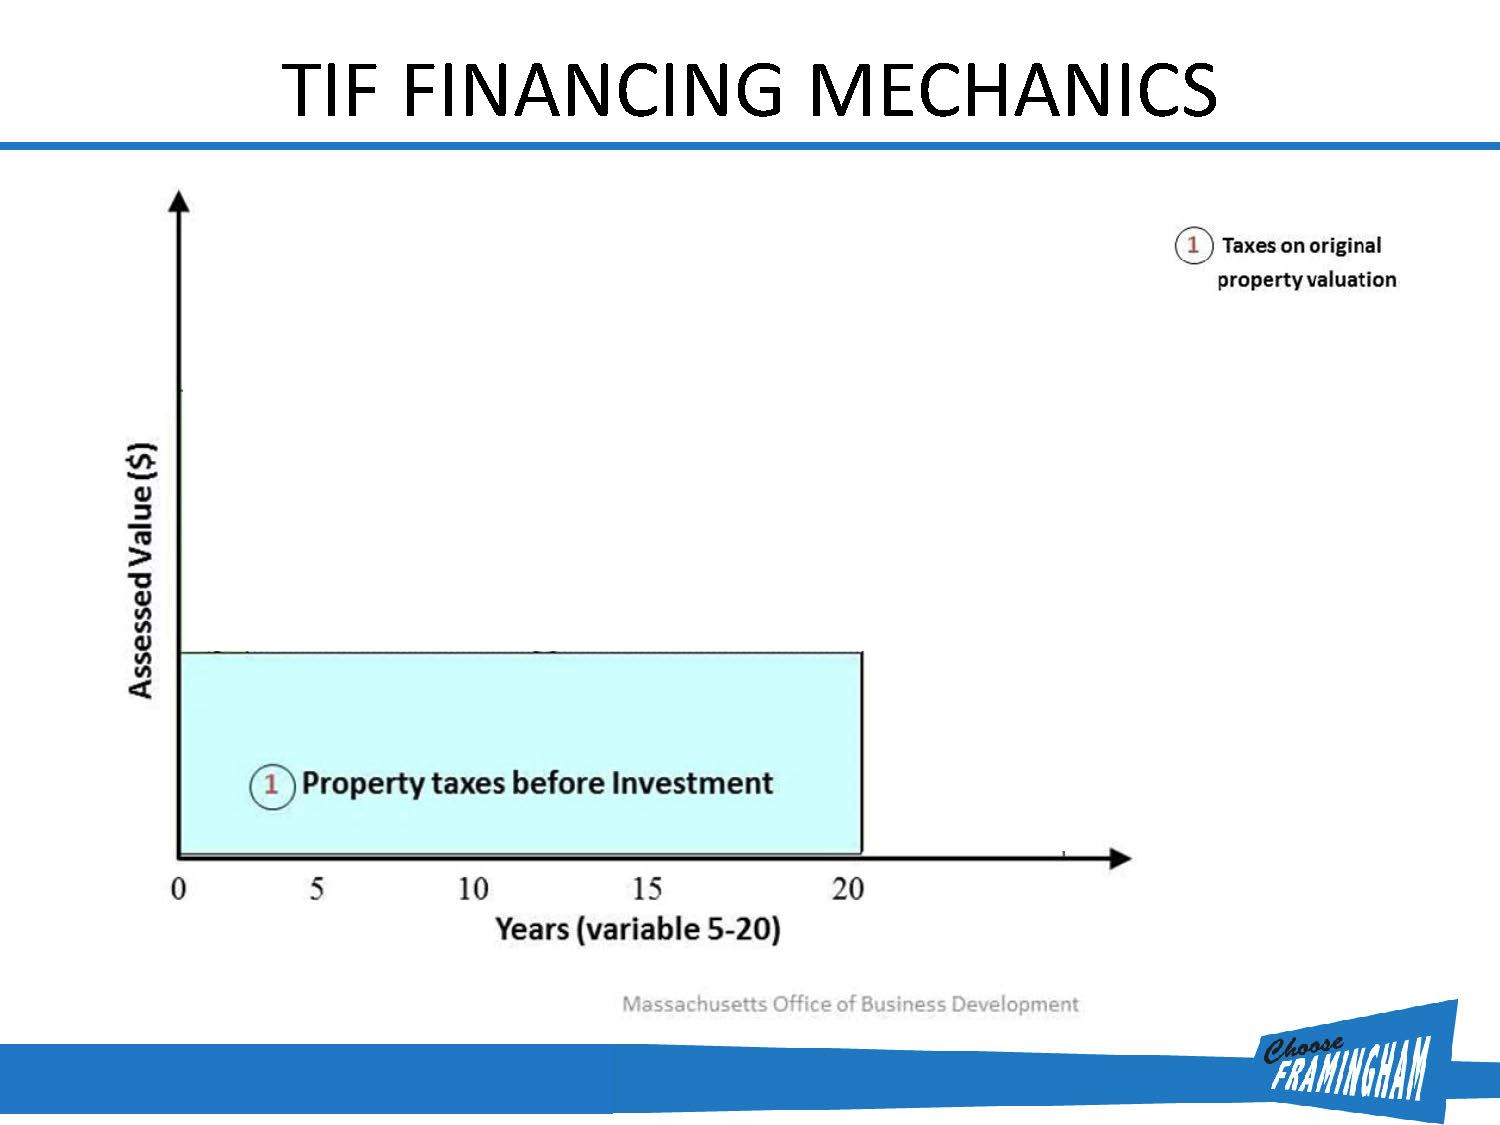 TIF Financing Mechanics Diagram